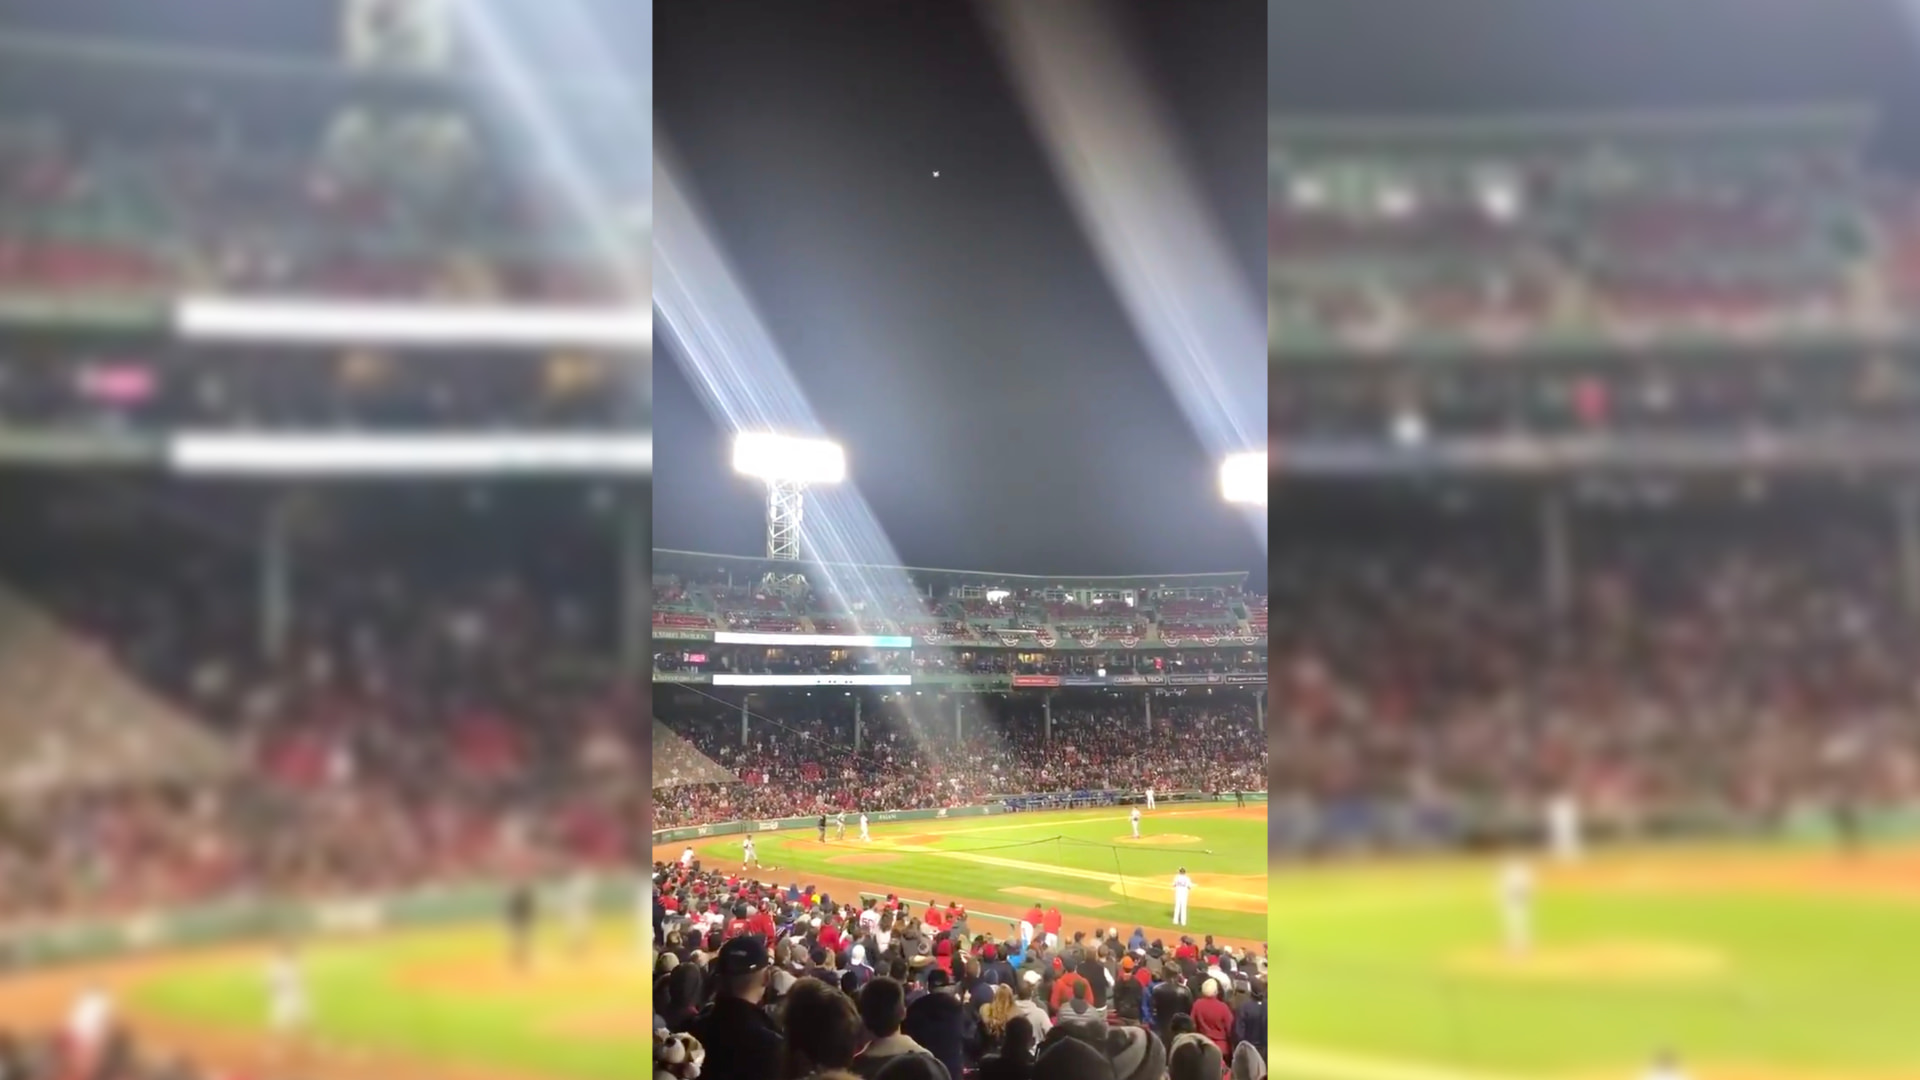 Drone illegally flew over Fenway Park during Red Sox game